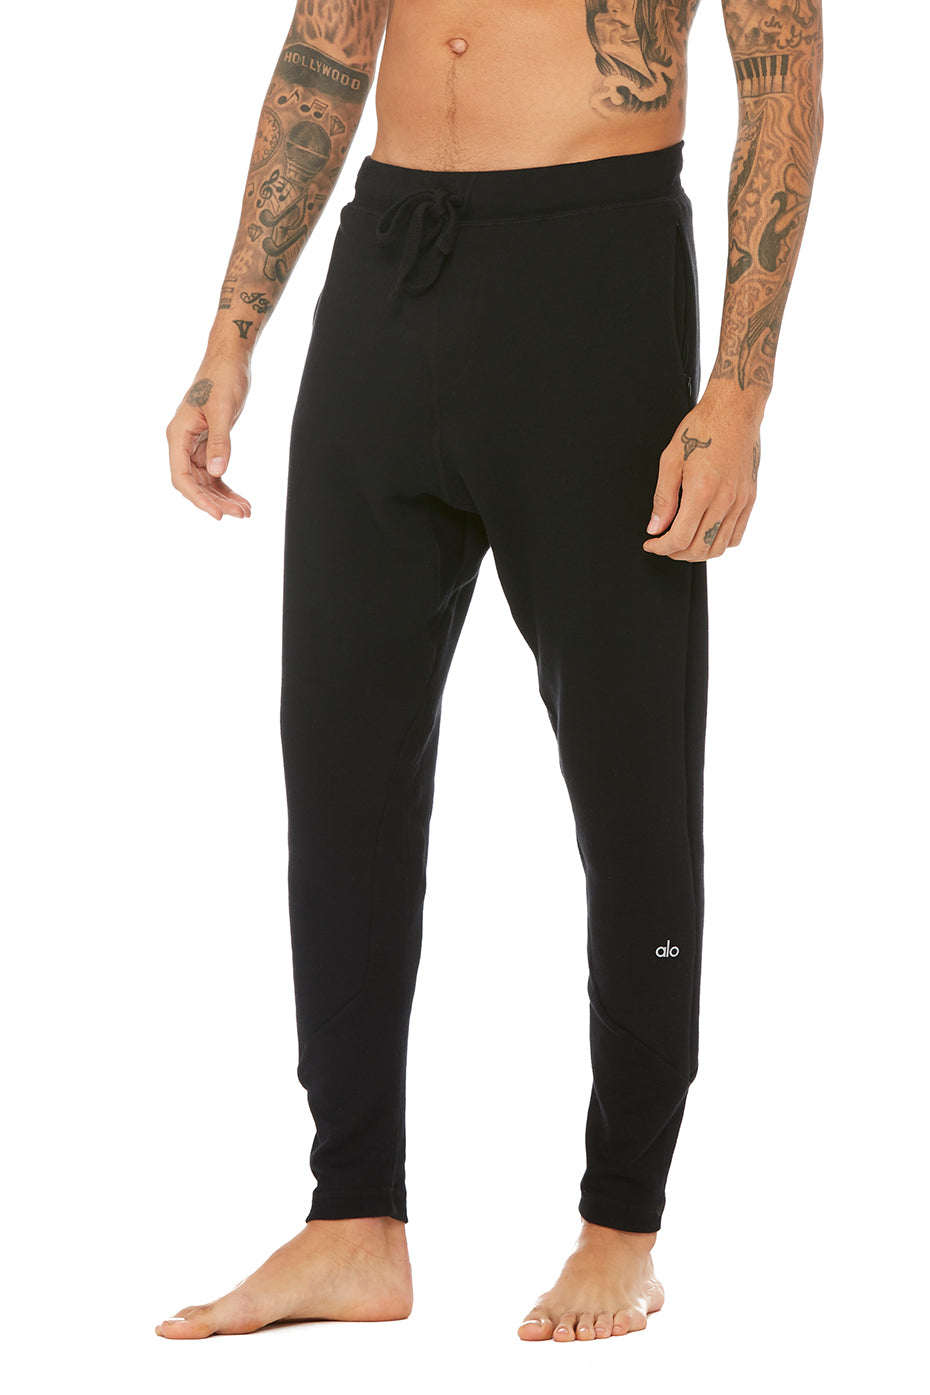 The Triumph Sweatpant